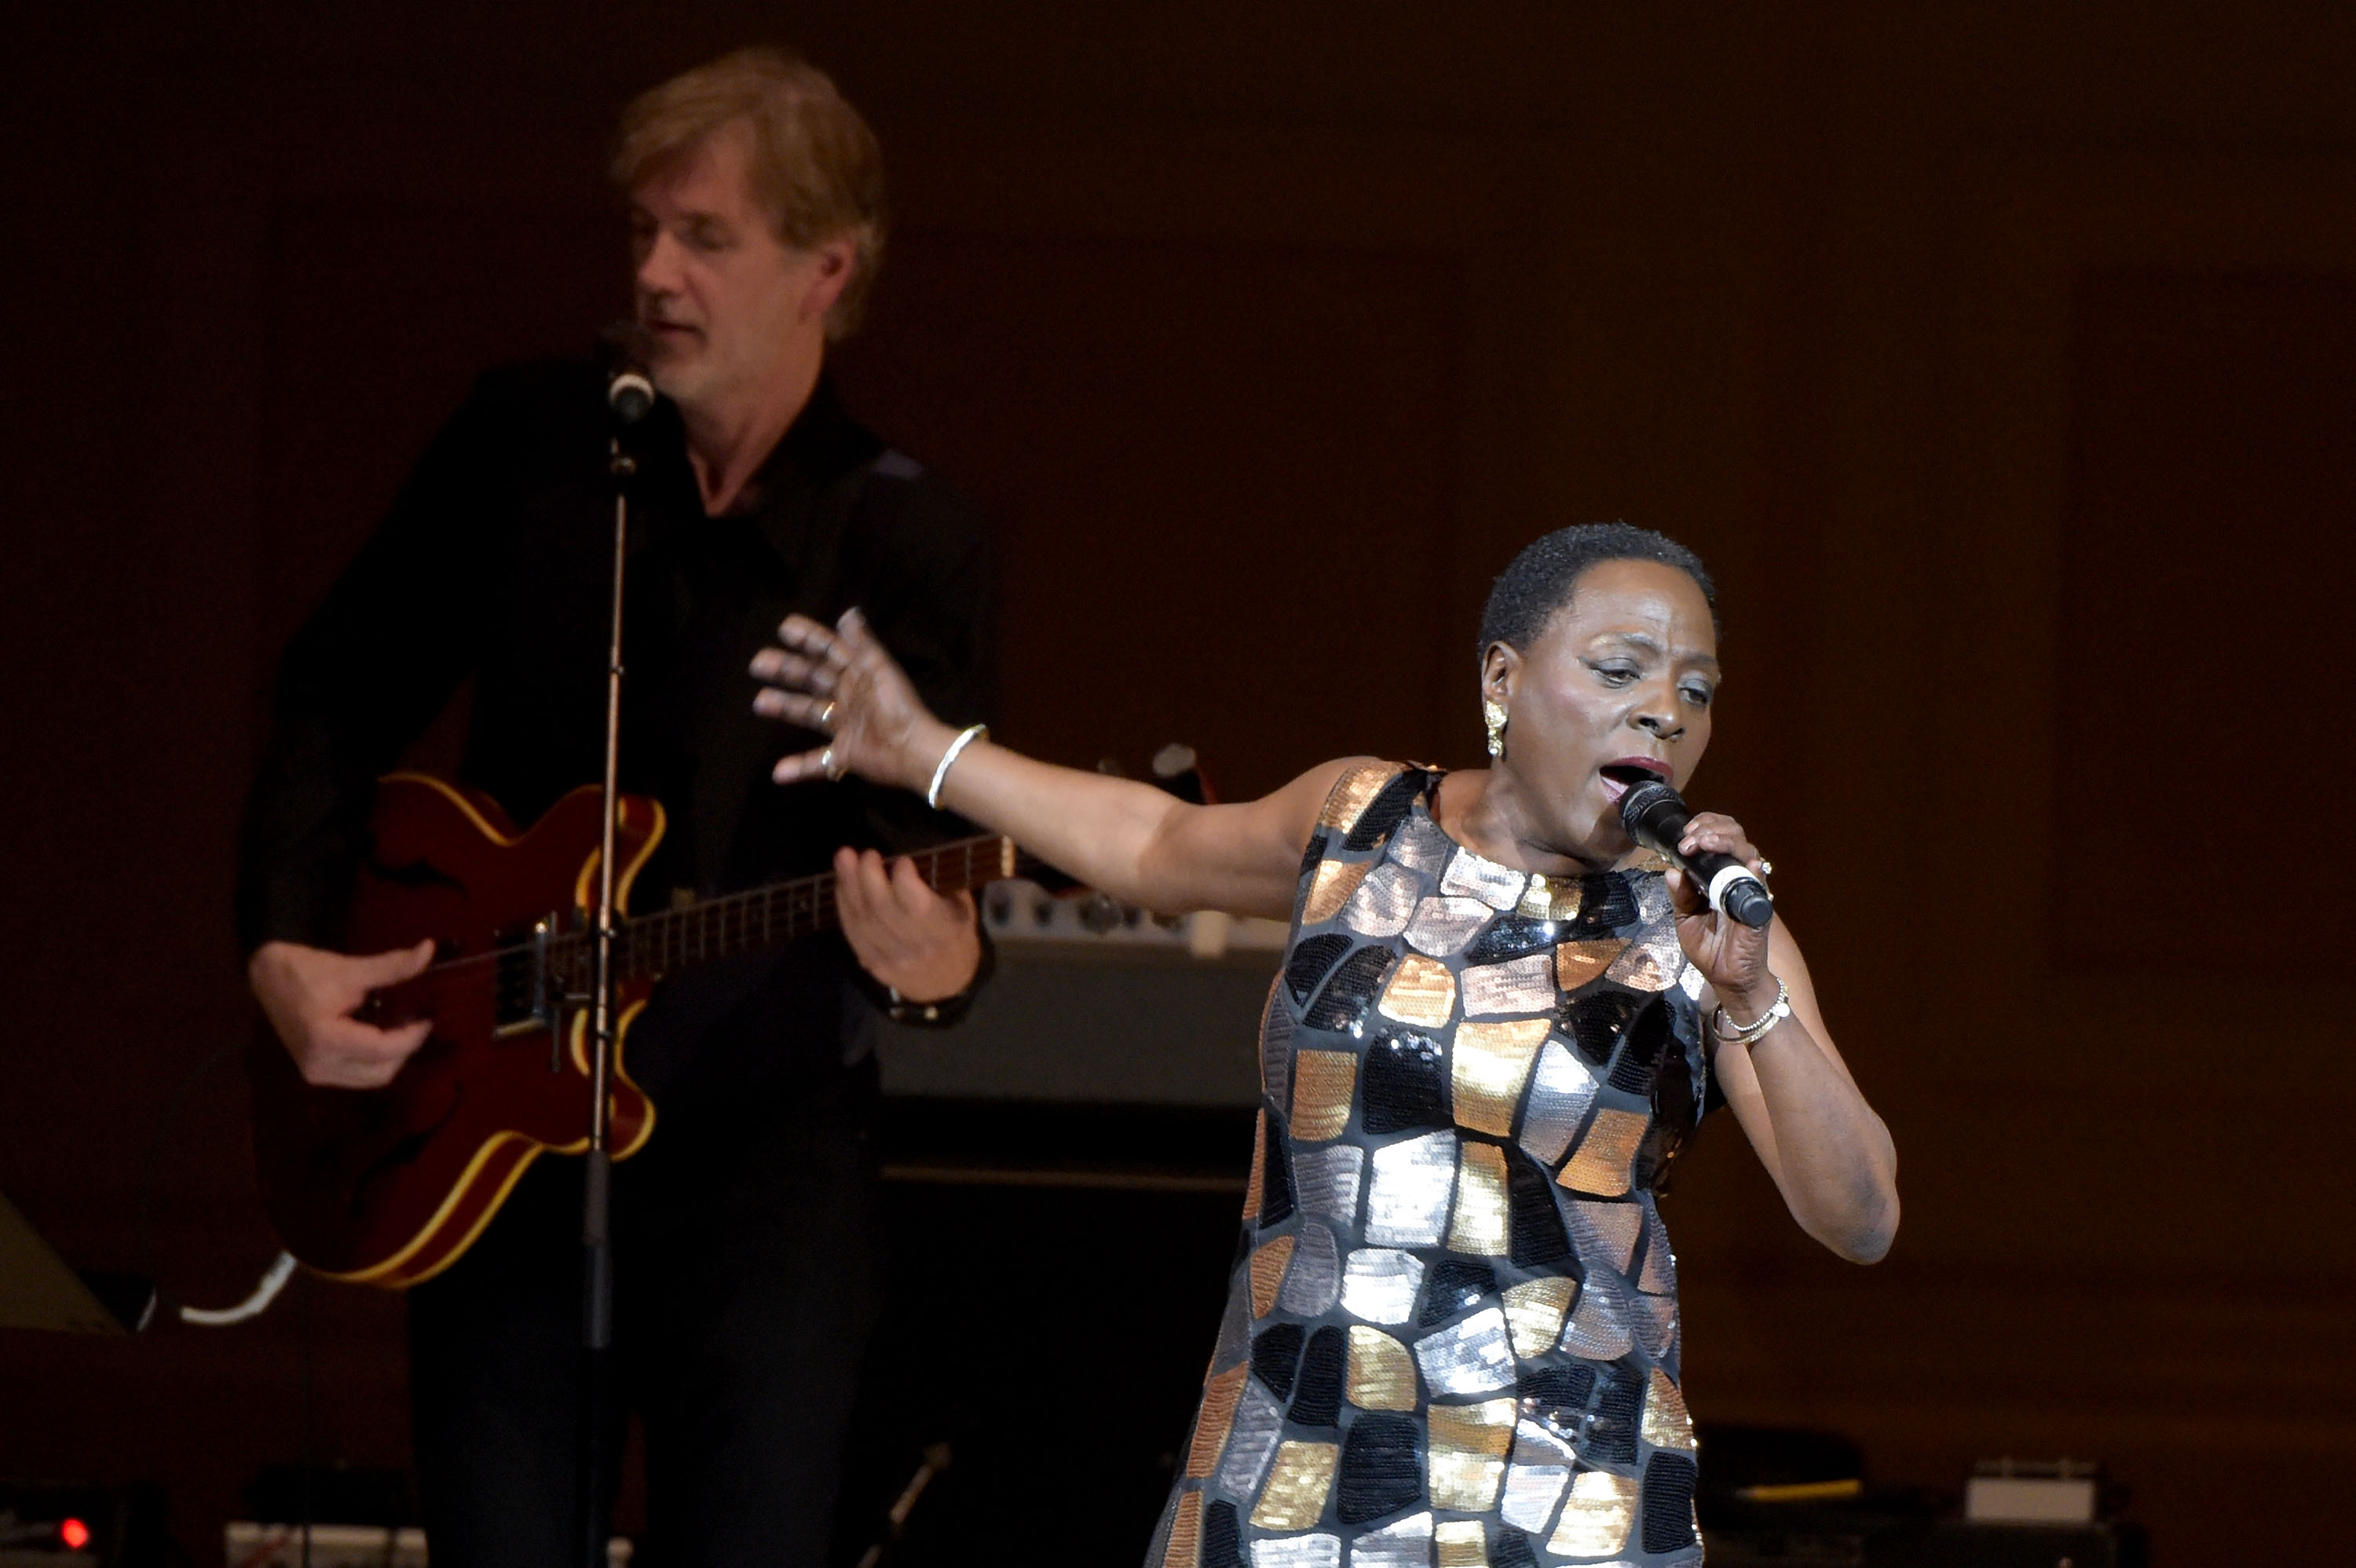 Singer Sharon Jones performs onstage at the 26th Annual Tibet House U.S. benefit concert at Carnegie Hall on February 22, 2016 in New York City.  (Photo by Theo Wargo/Getty Images for Tibet House)